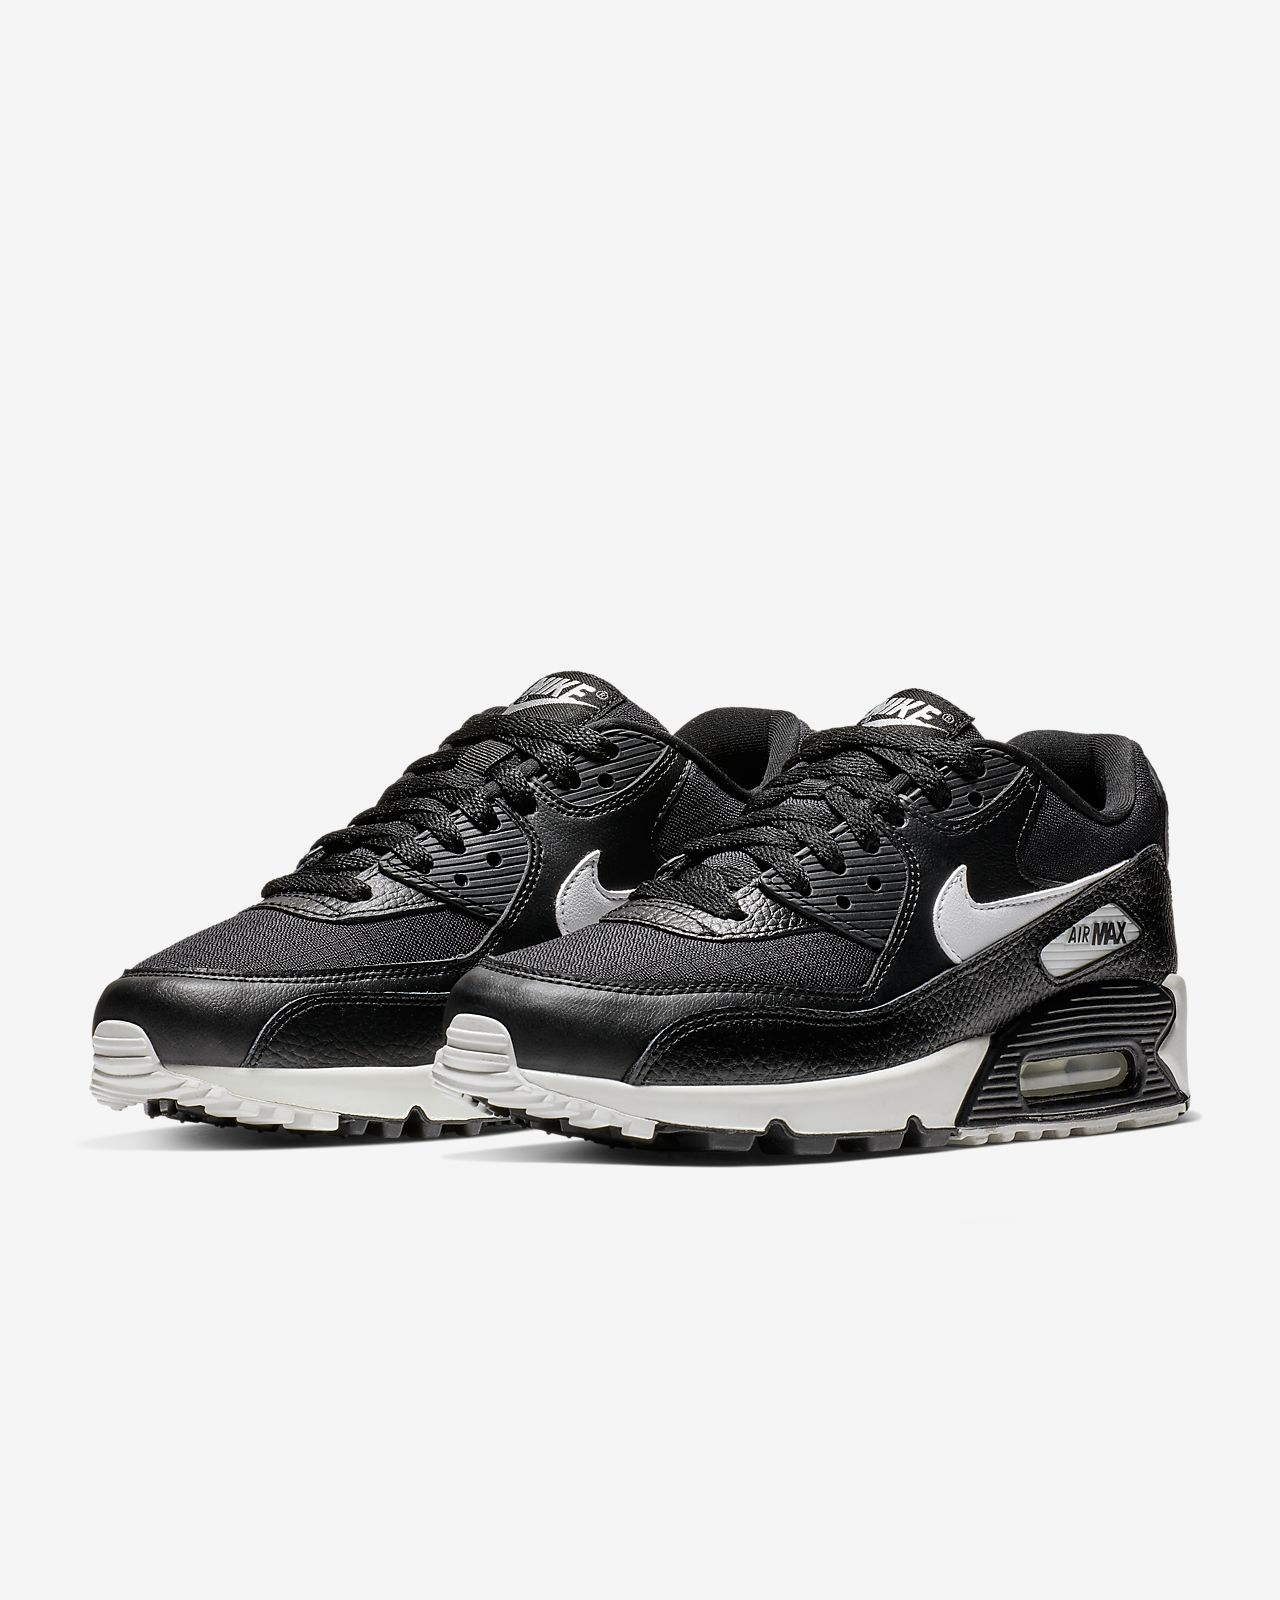 premium selection 11a58 c85a7 ... Buty damskie Nike Air Max 90